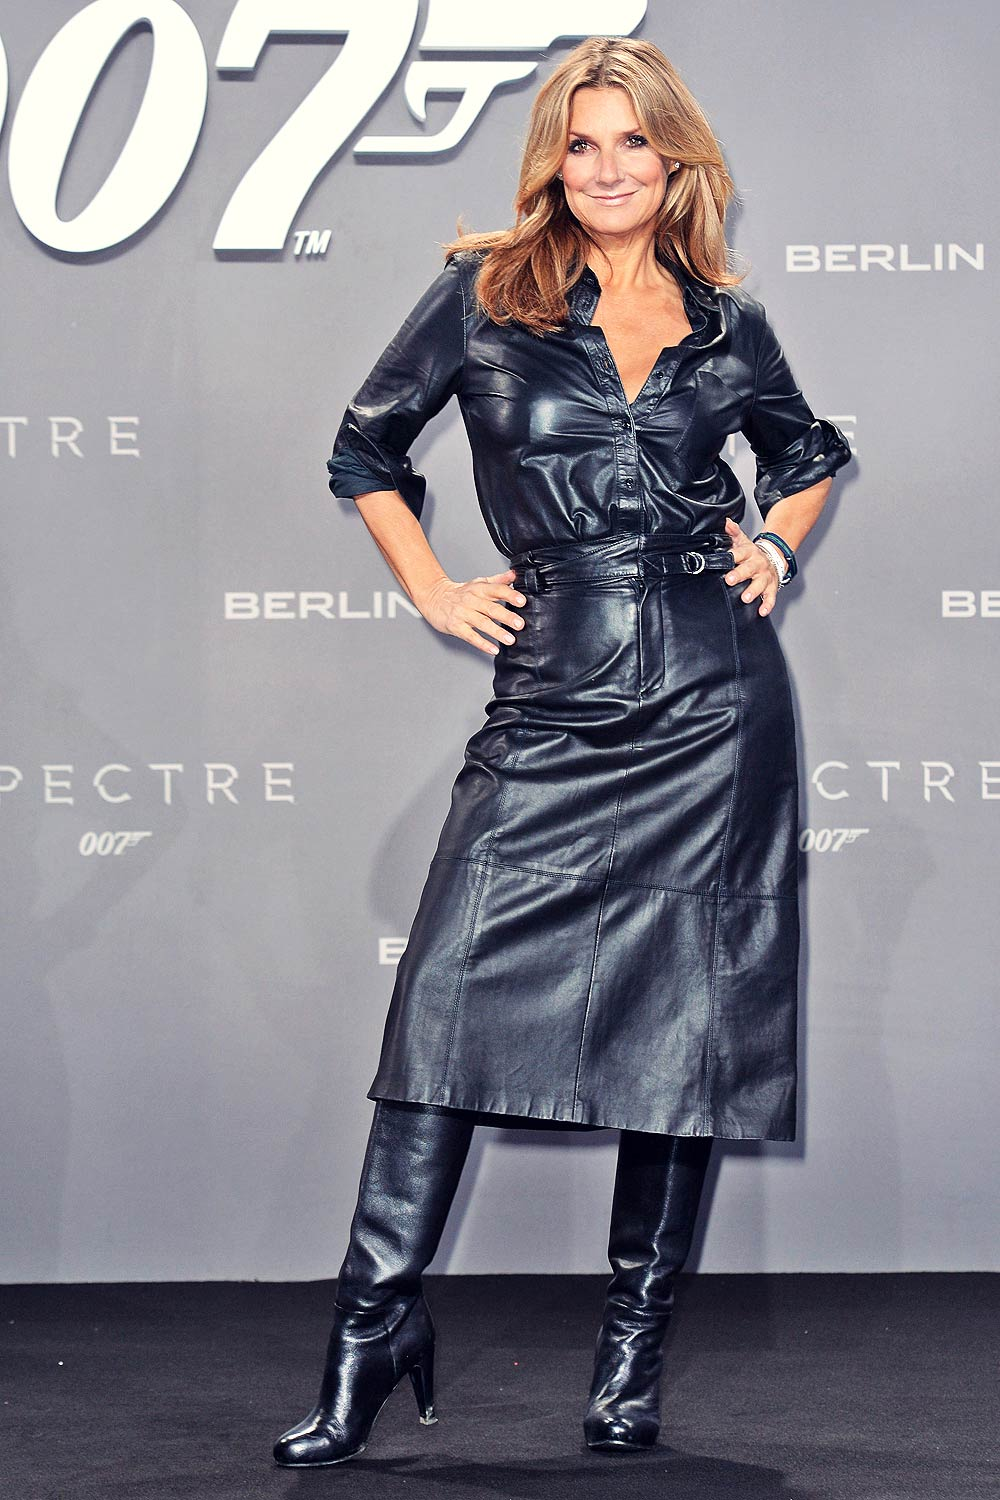 Kim Fischer attends Premiere of Spectre in Berlin